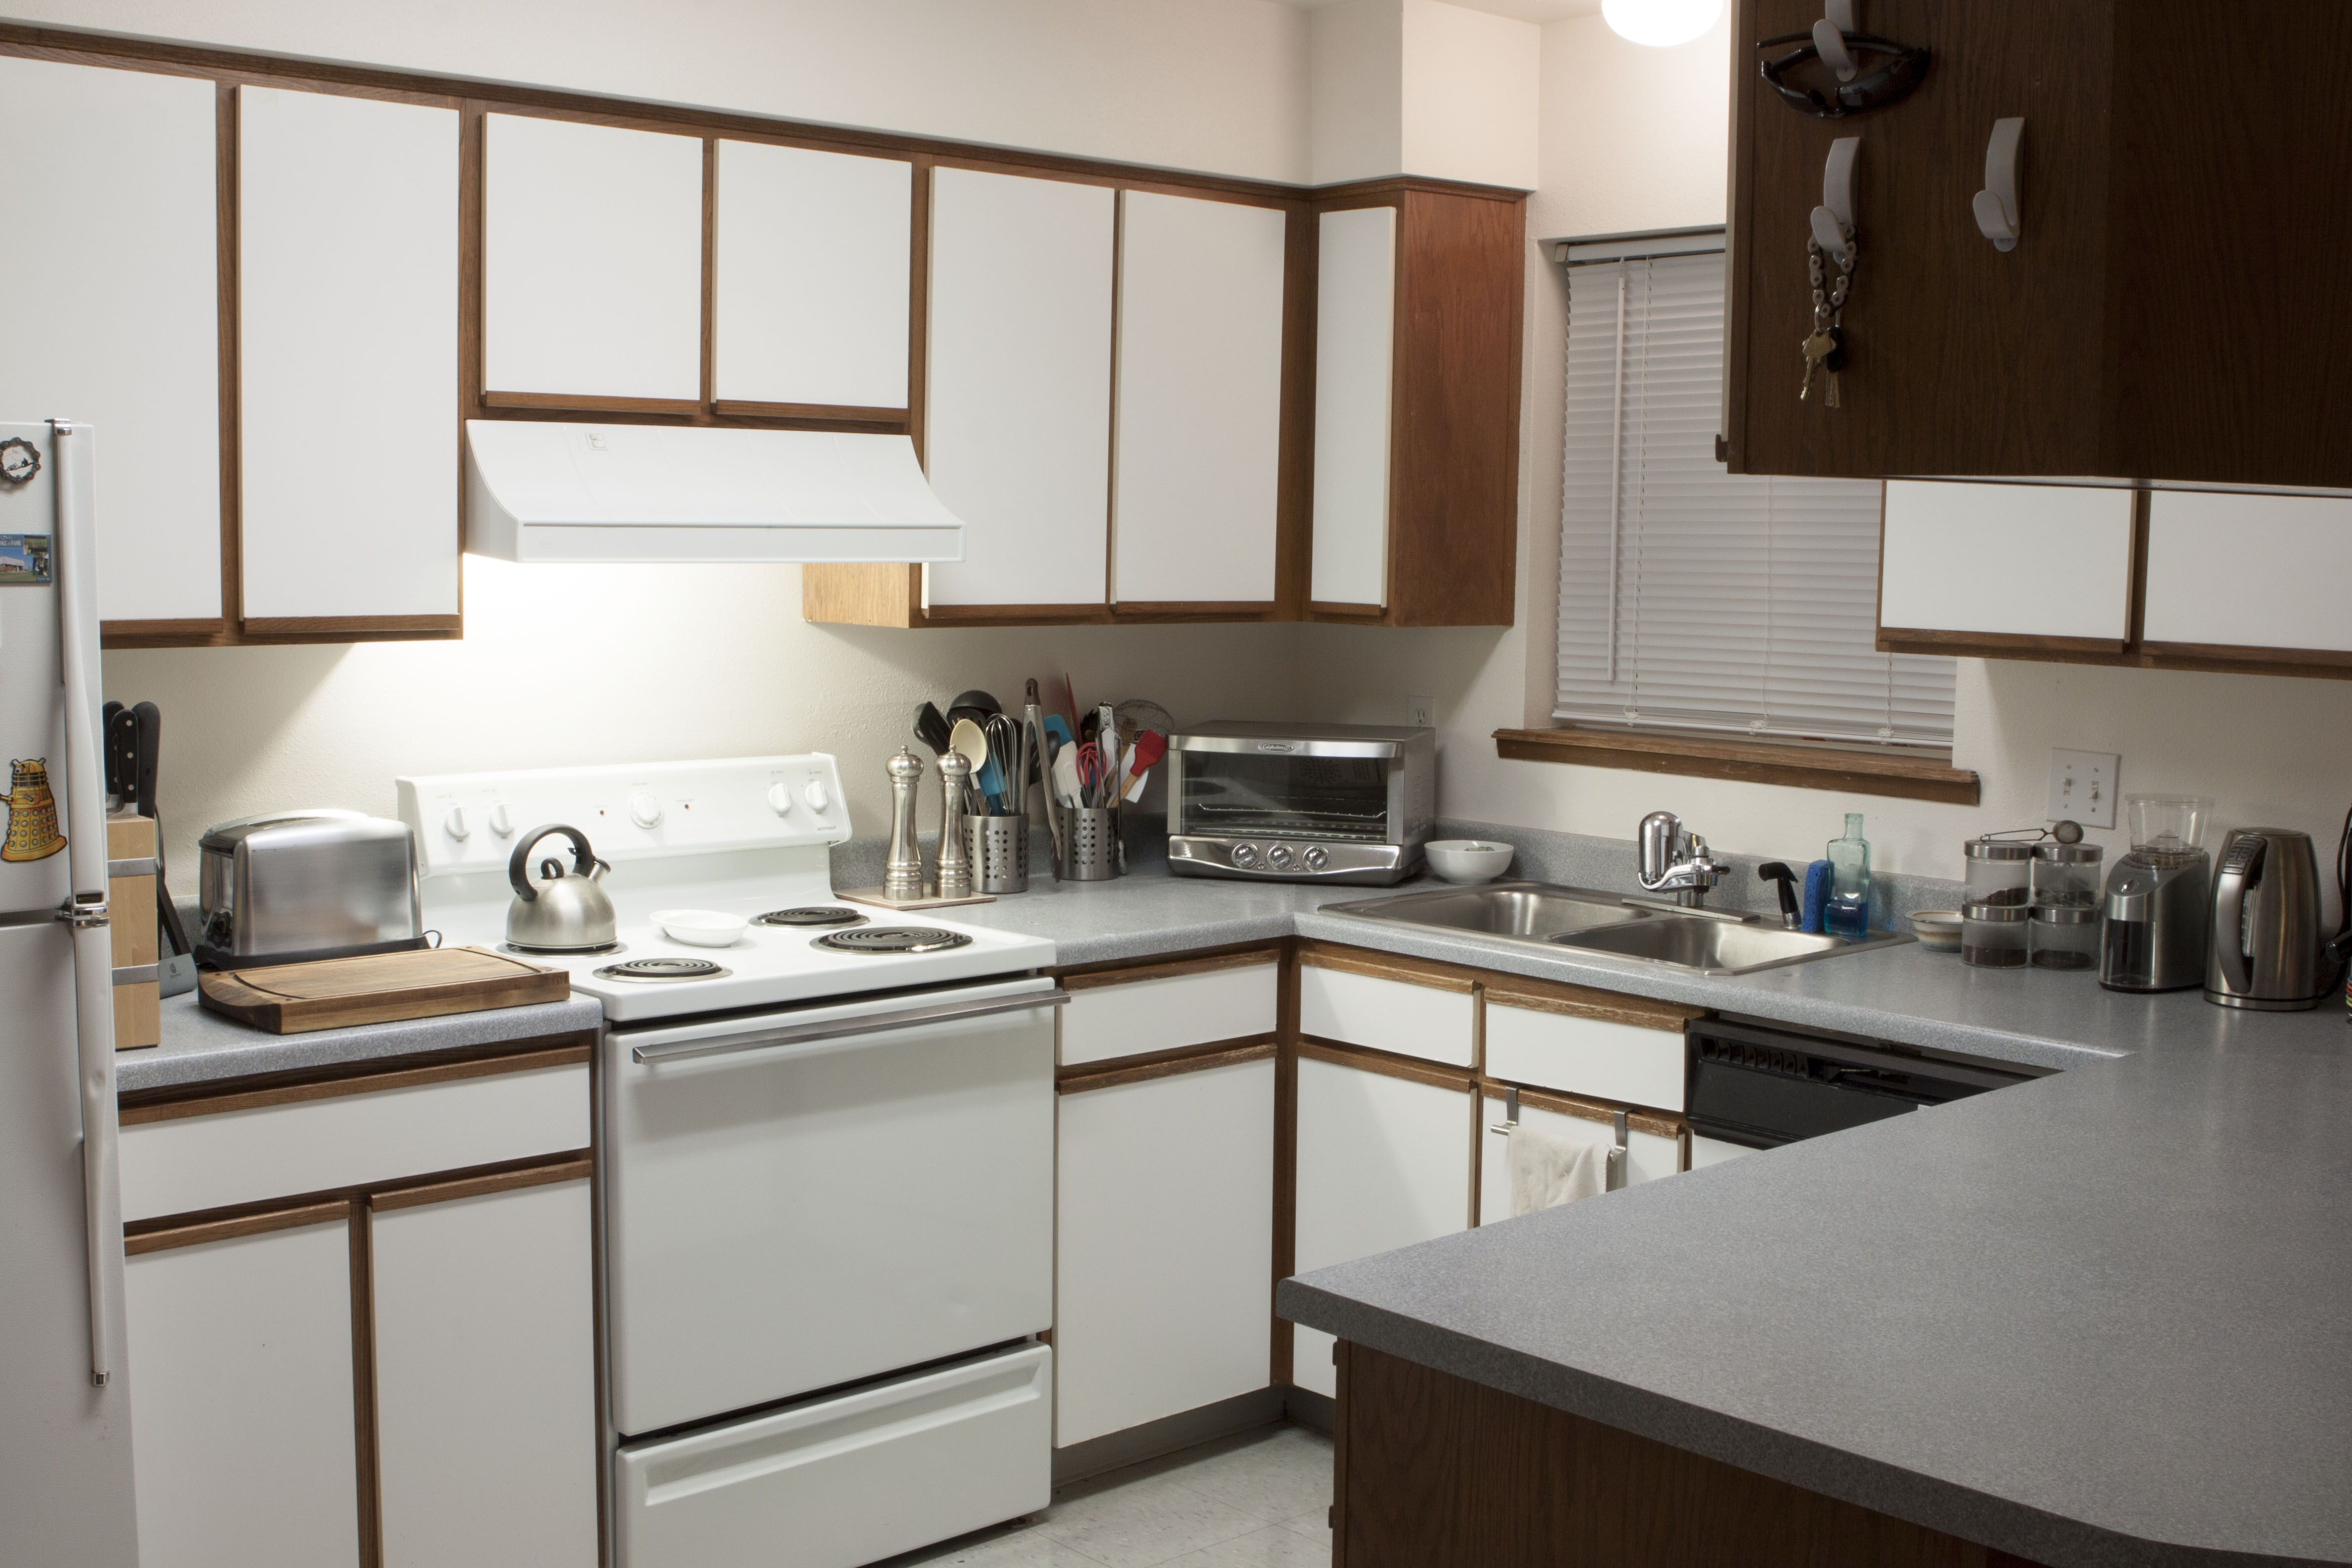 Wightman 3 Bedroom Townhouse Kitchen